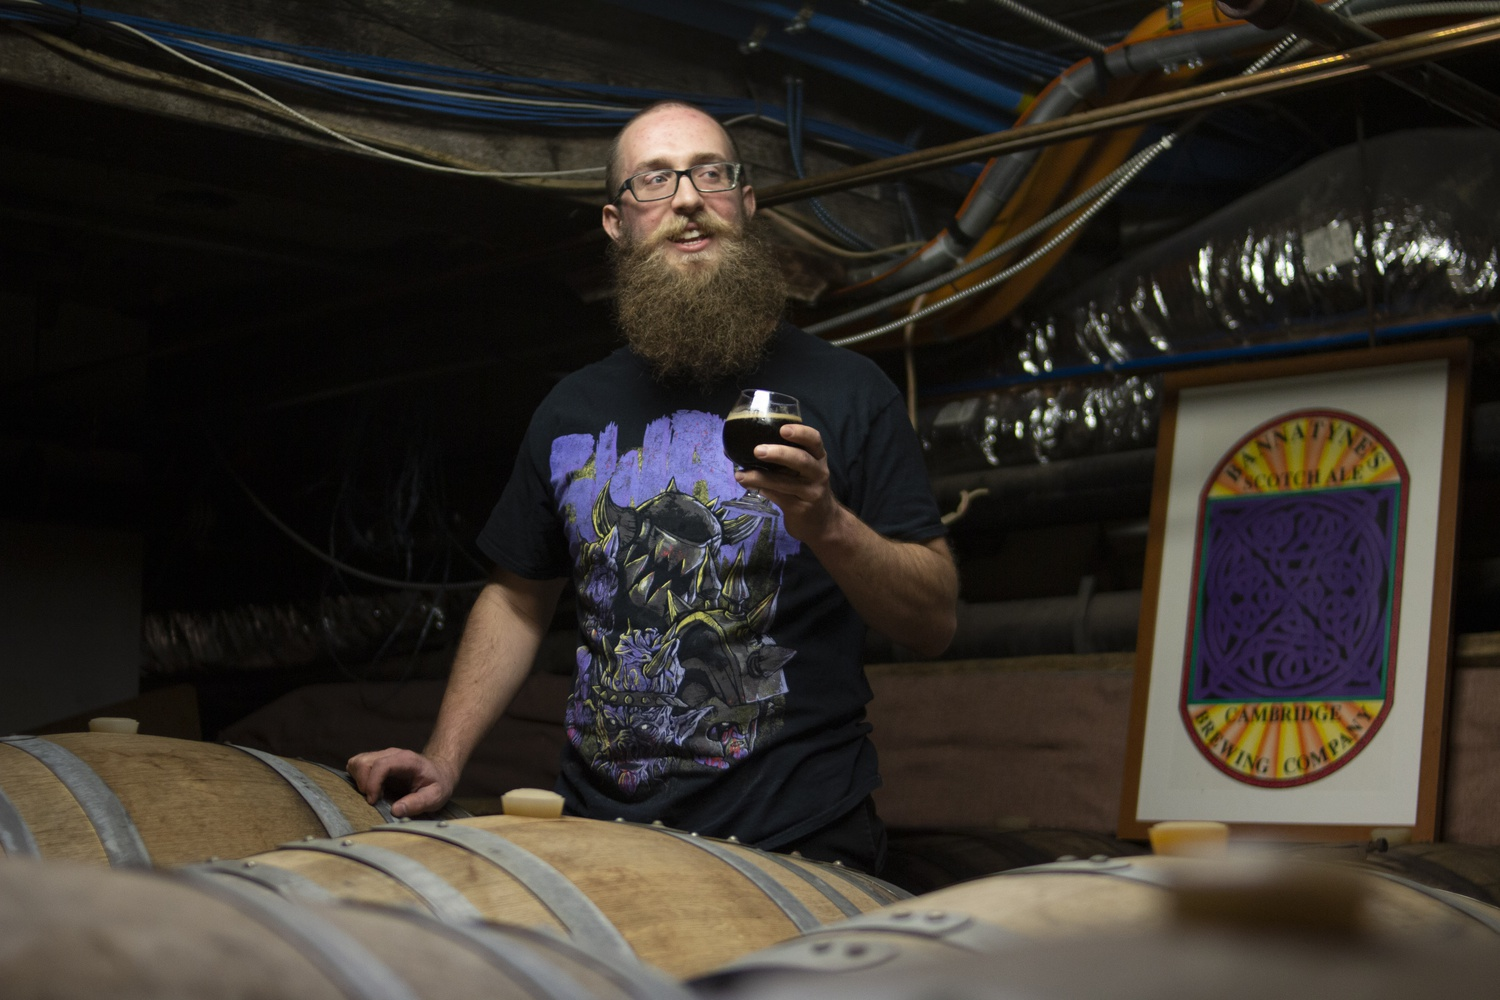 """The Cambridge Brewing Company presents """"For Those Who Hear The Whisper"""", a Norwegian strong dark ale brewed with sheep skulls from local butcher M.F. Dulock. Definitely not vegan/vegetarian friendly."""